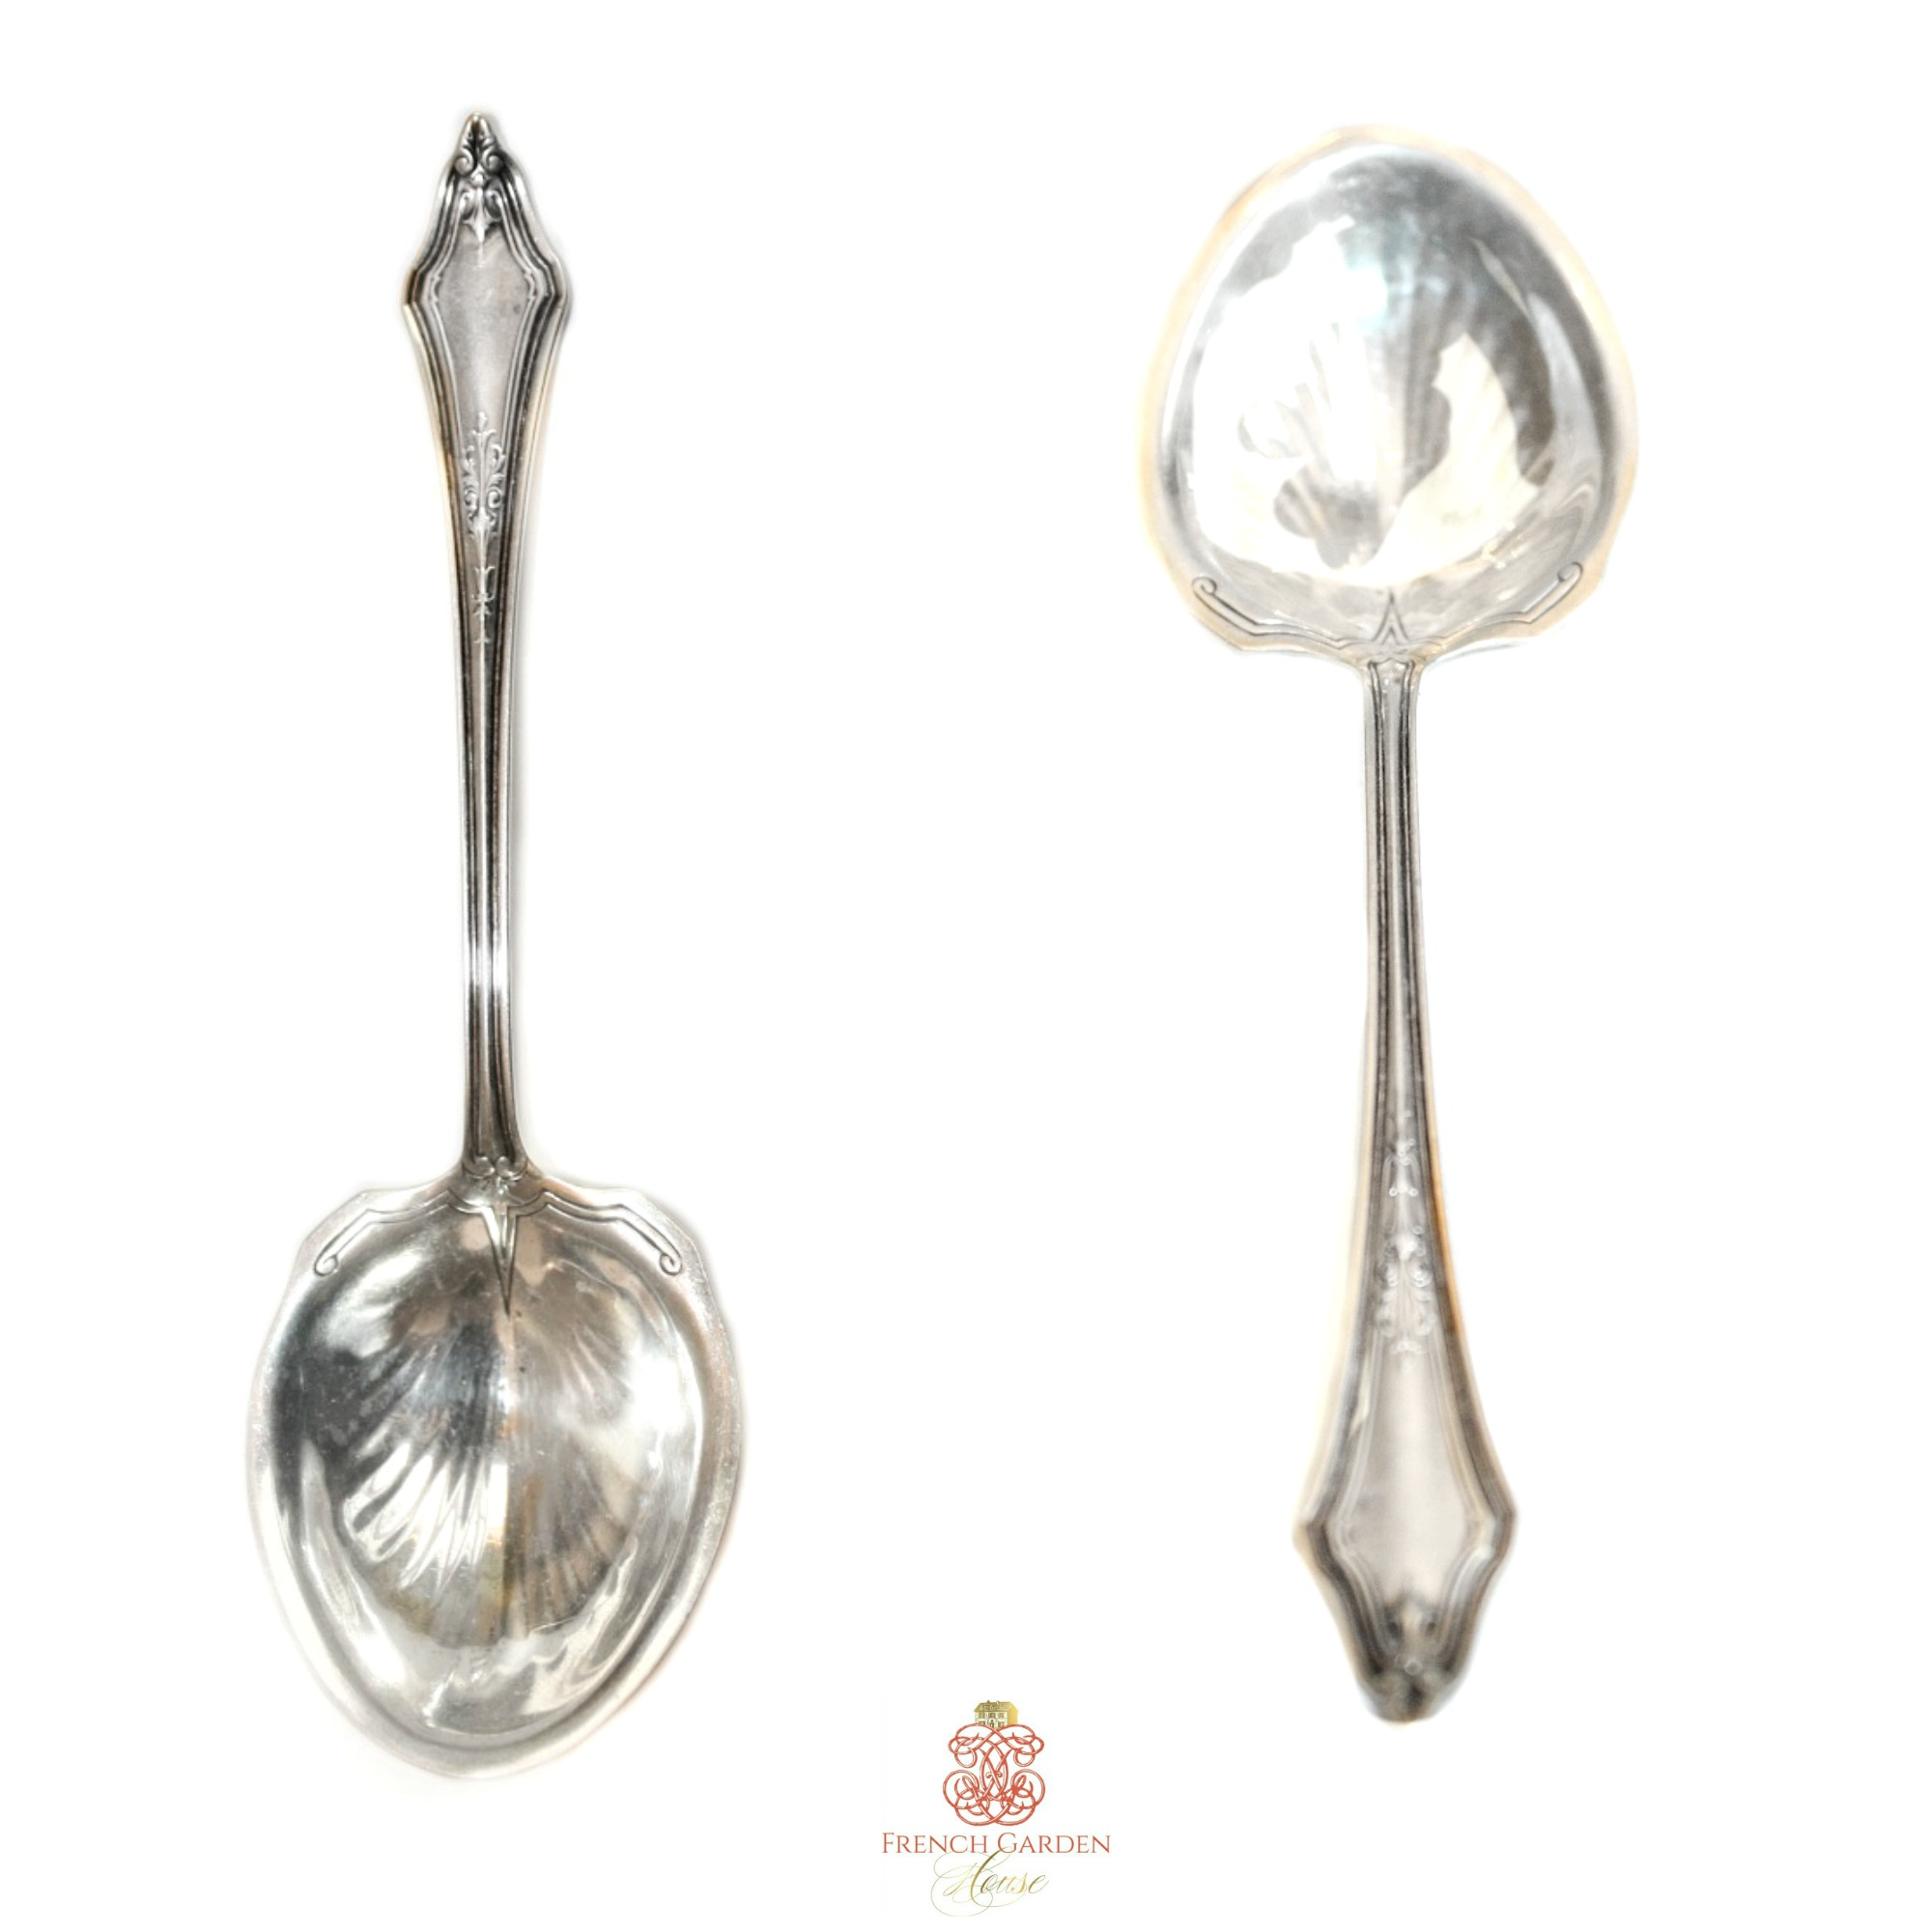 Antique Sterling Silver Jam Spoon